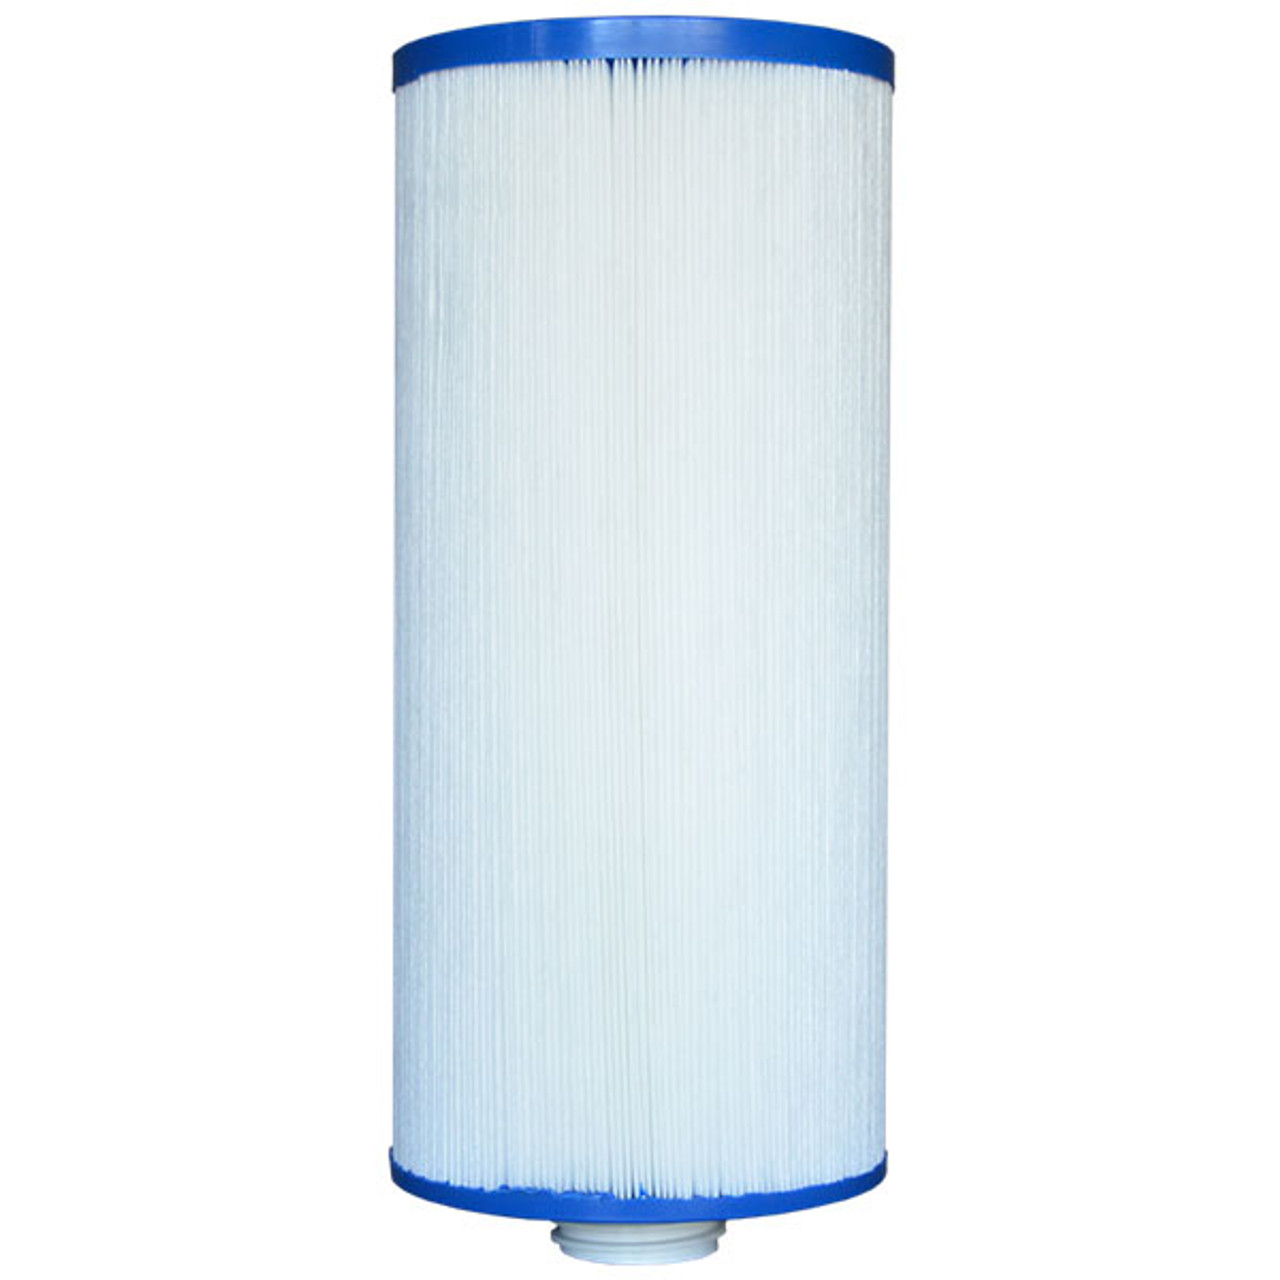 Pleatco Hot Tub Filter For Jacuzzi 6000 383a